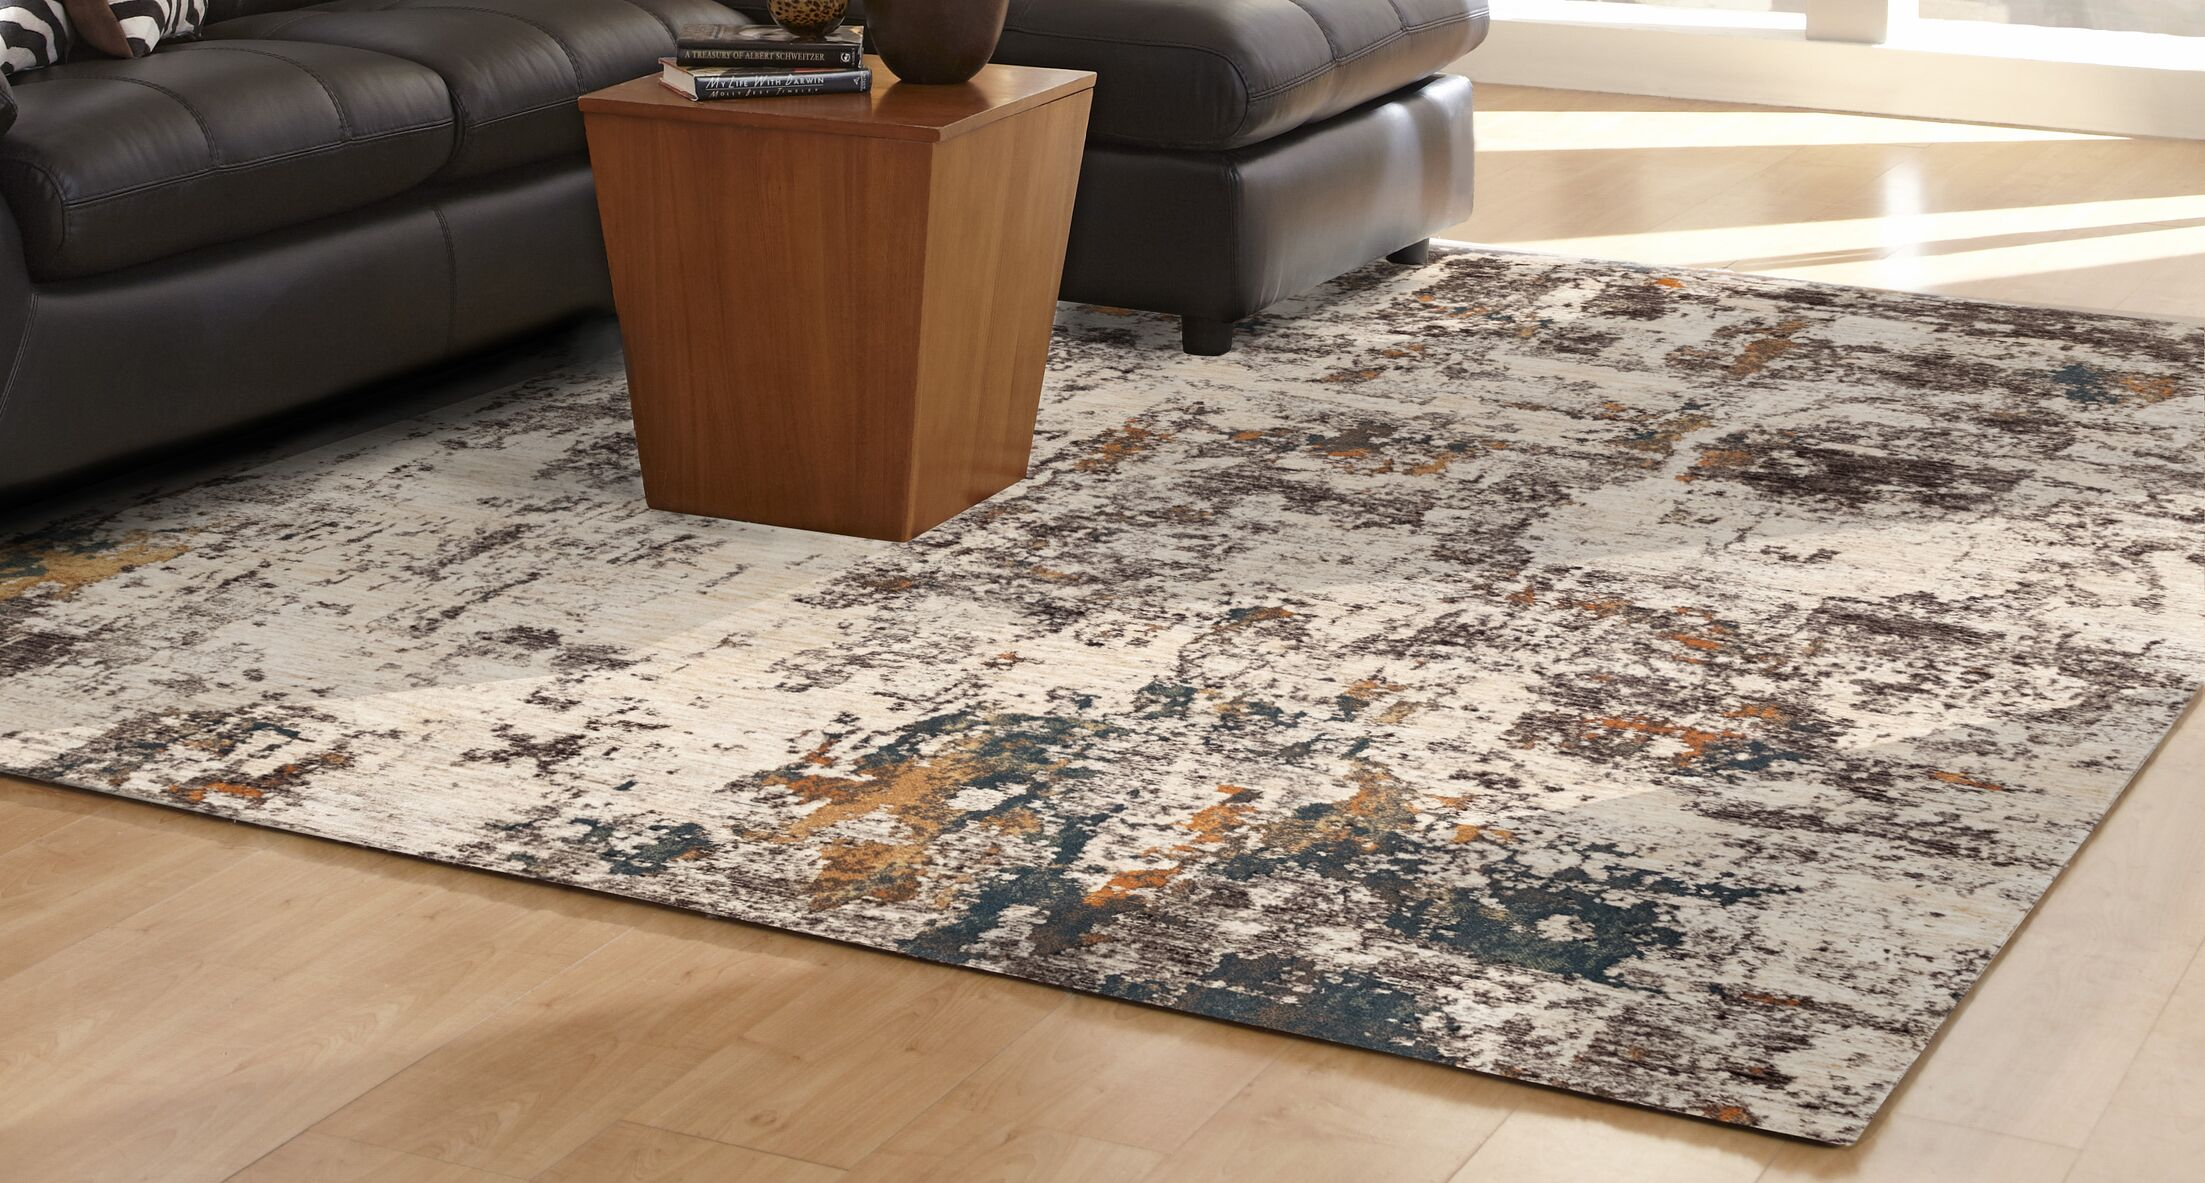 Maltby Abstract Beige/Brown Area Rug Size: Runner 1'11